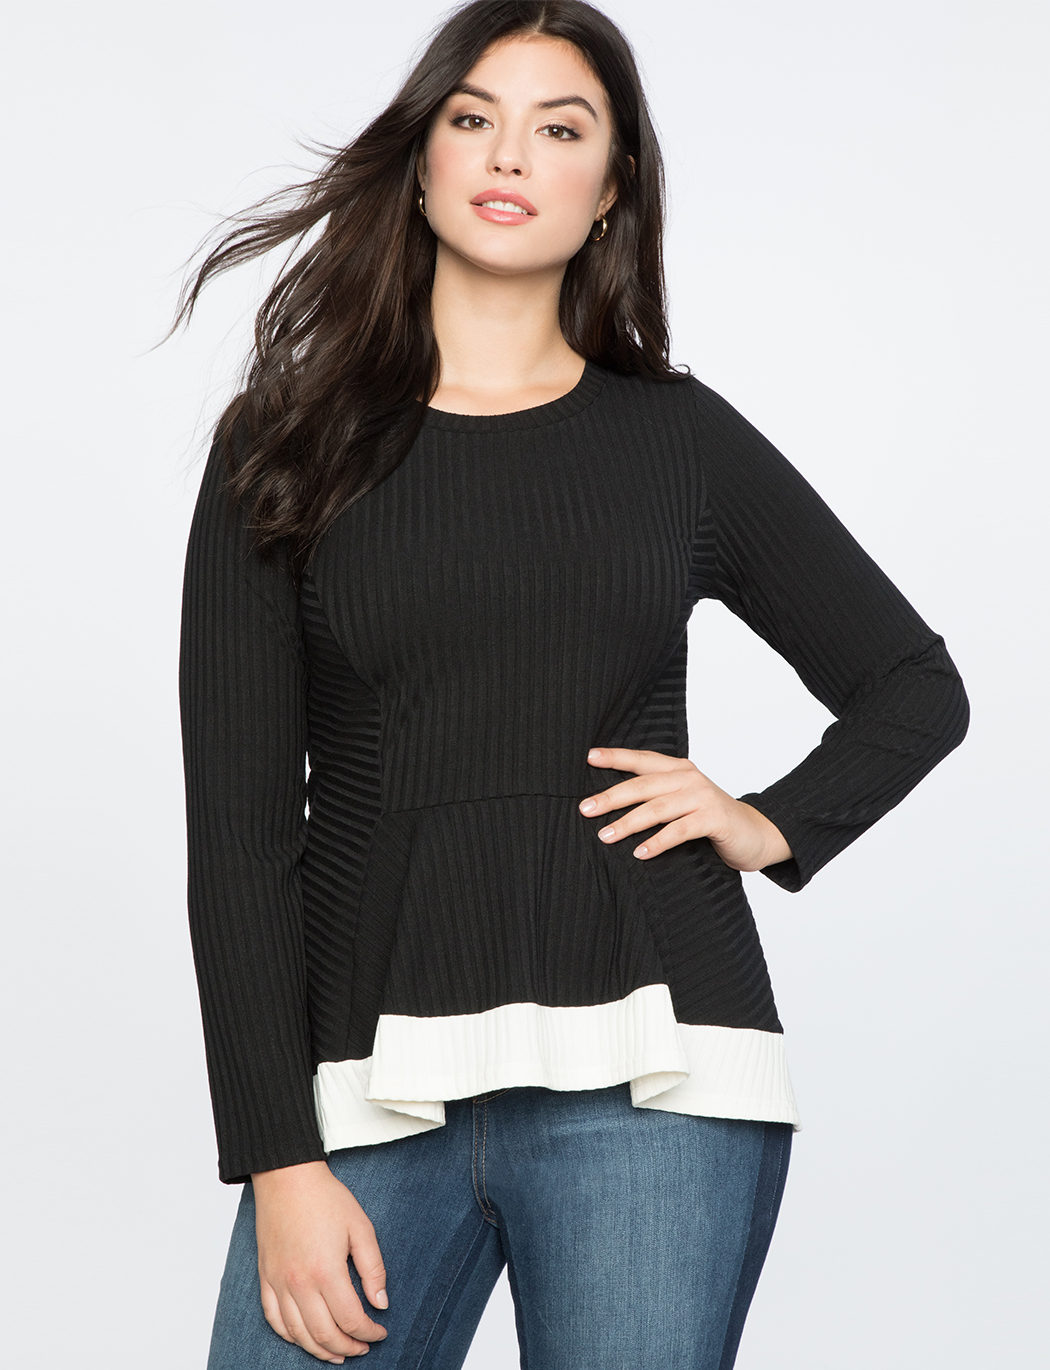 b55c79ab75a Ribbed Long Sleeve Top with Contrast Trim | Women's Plus Size Tops ...